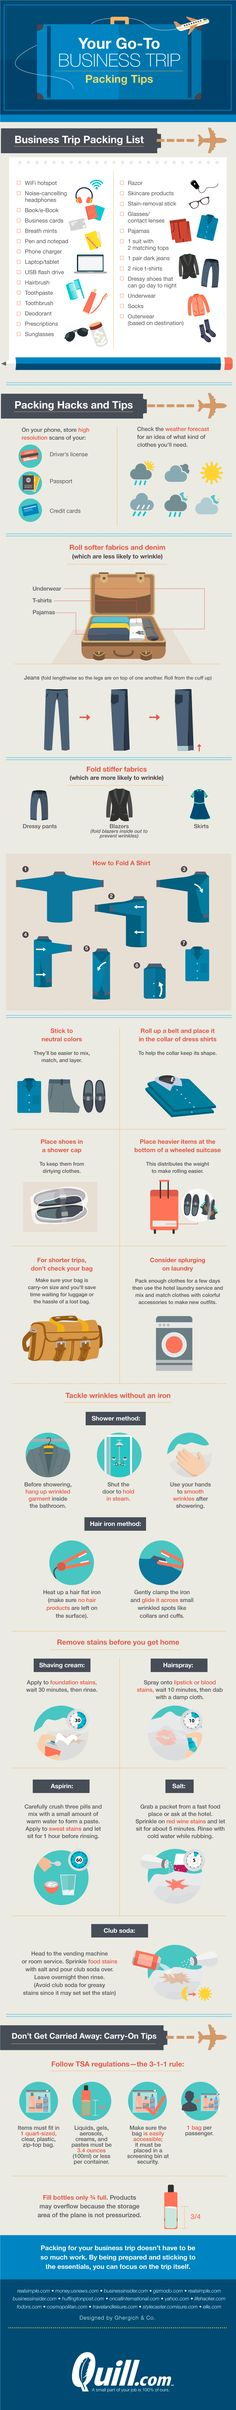 Your Go-To Business Trip Packing Tips #Infographic #Business